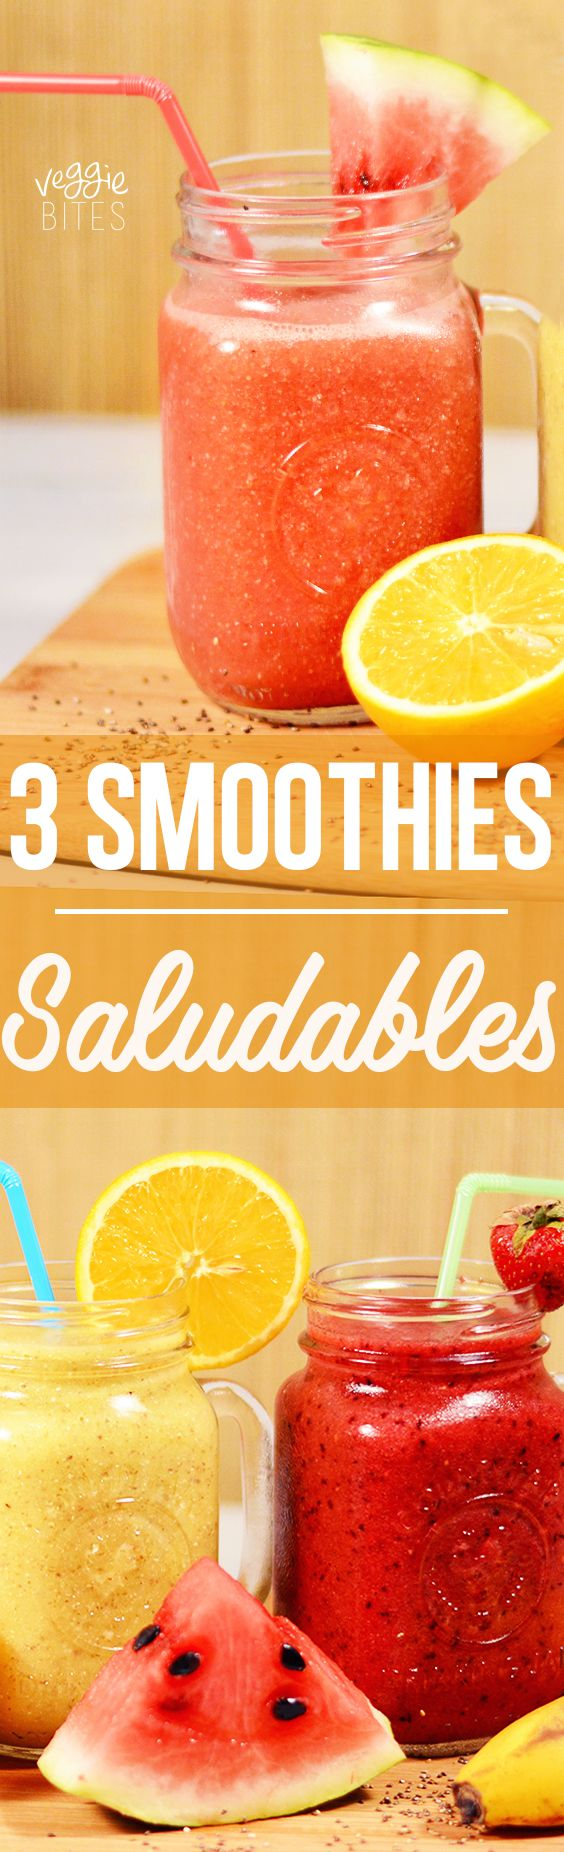 3 Smoothies Saludables